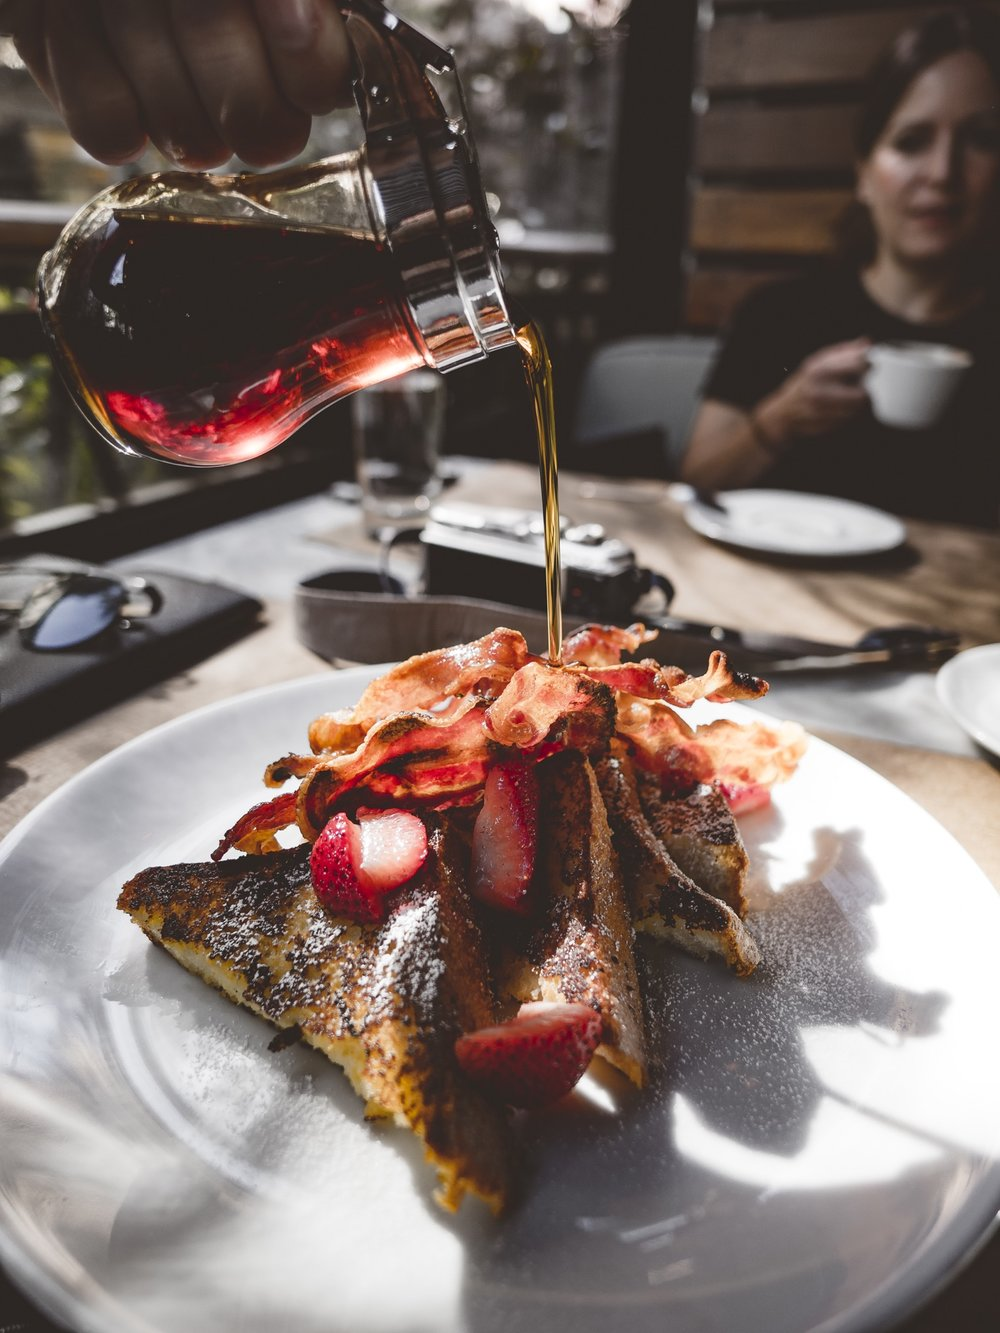 French Toast Bacon Strawberries Maple Syrup New York City NYC Breakfast Pour Pouring